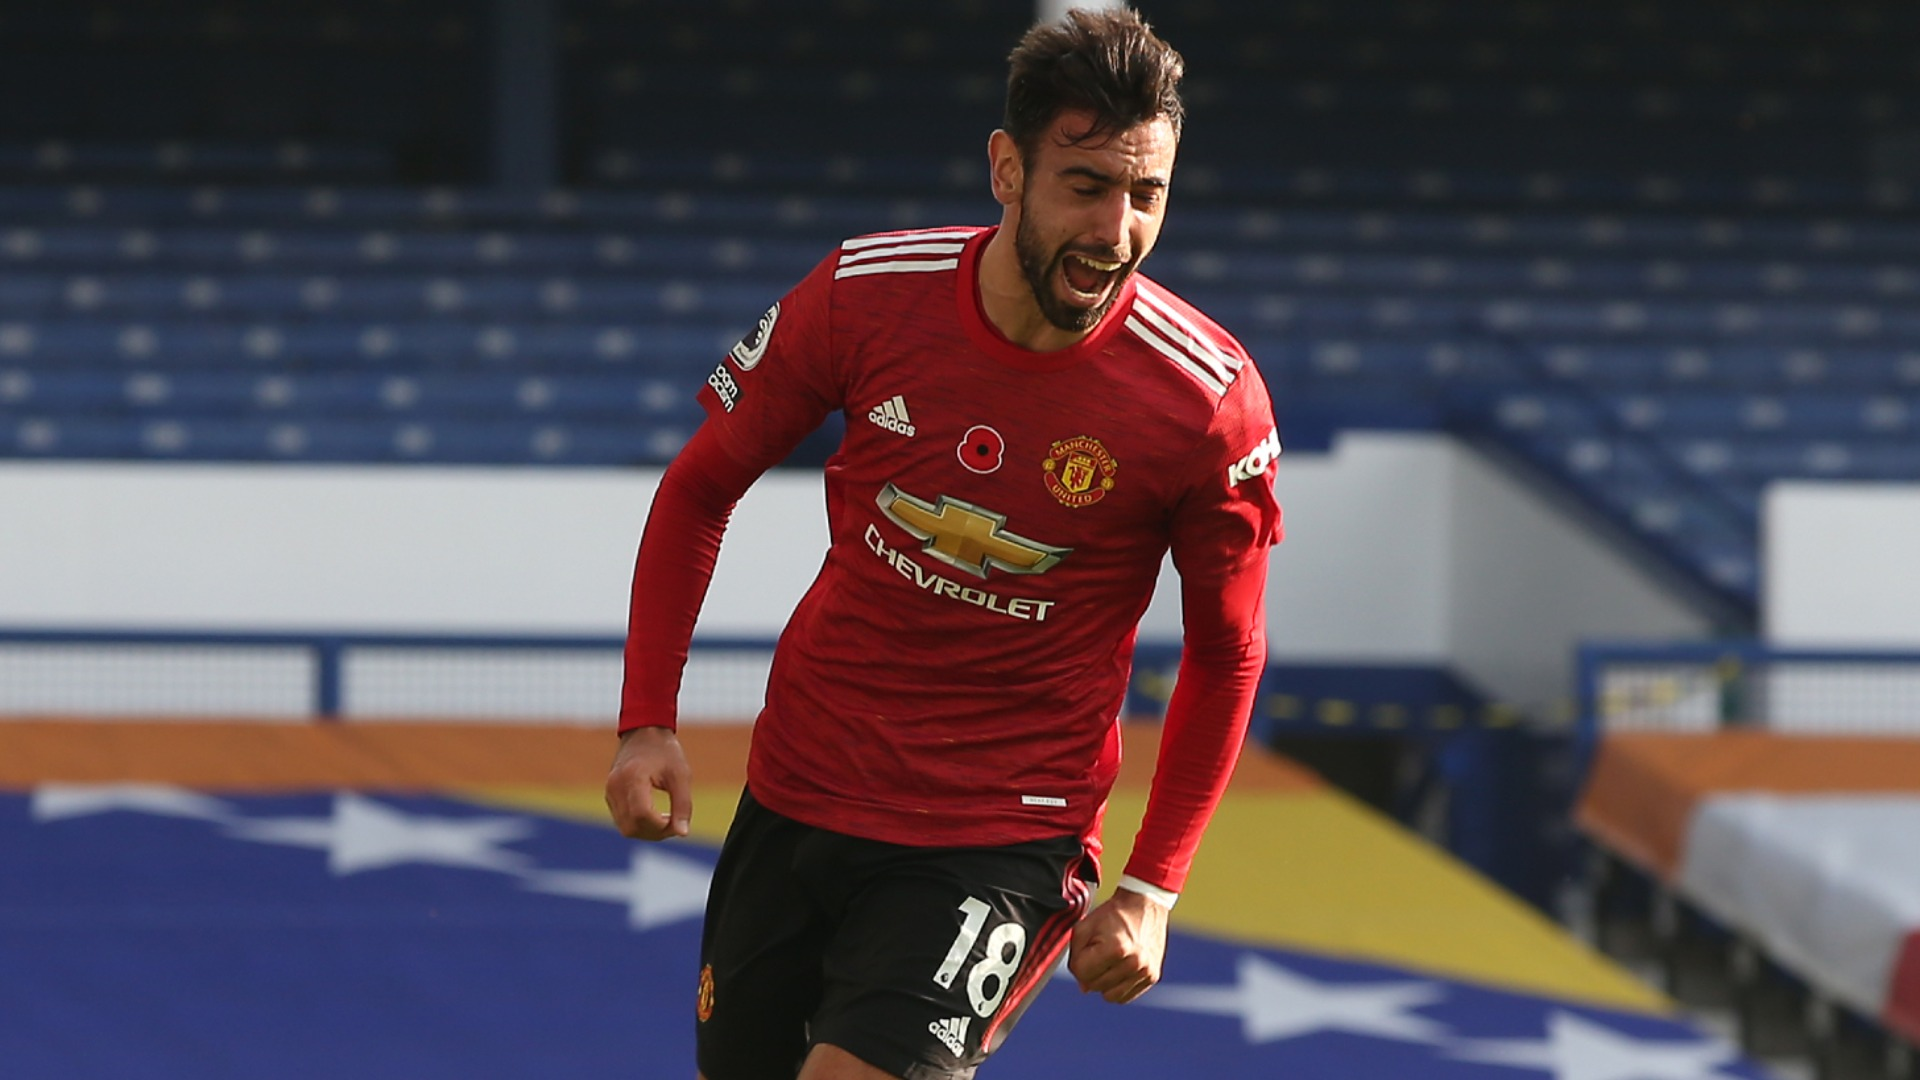 Everton 1 3 Manchester United Fernandes Leads Solskjaer To Valuable Victory Epl News Stadium Astro